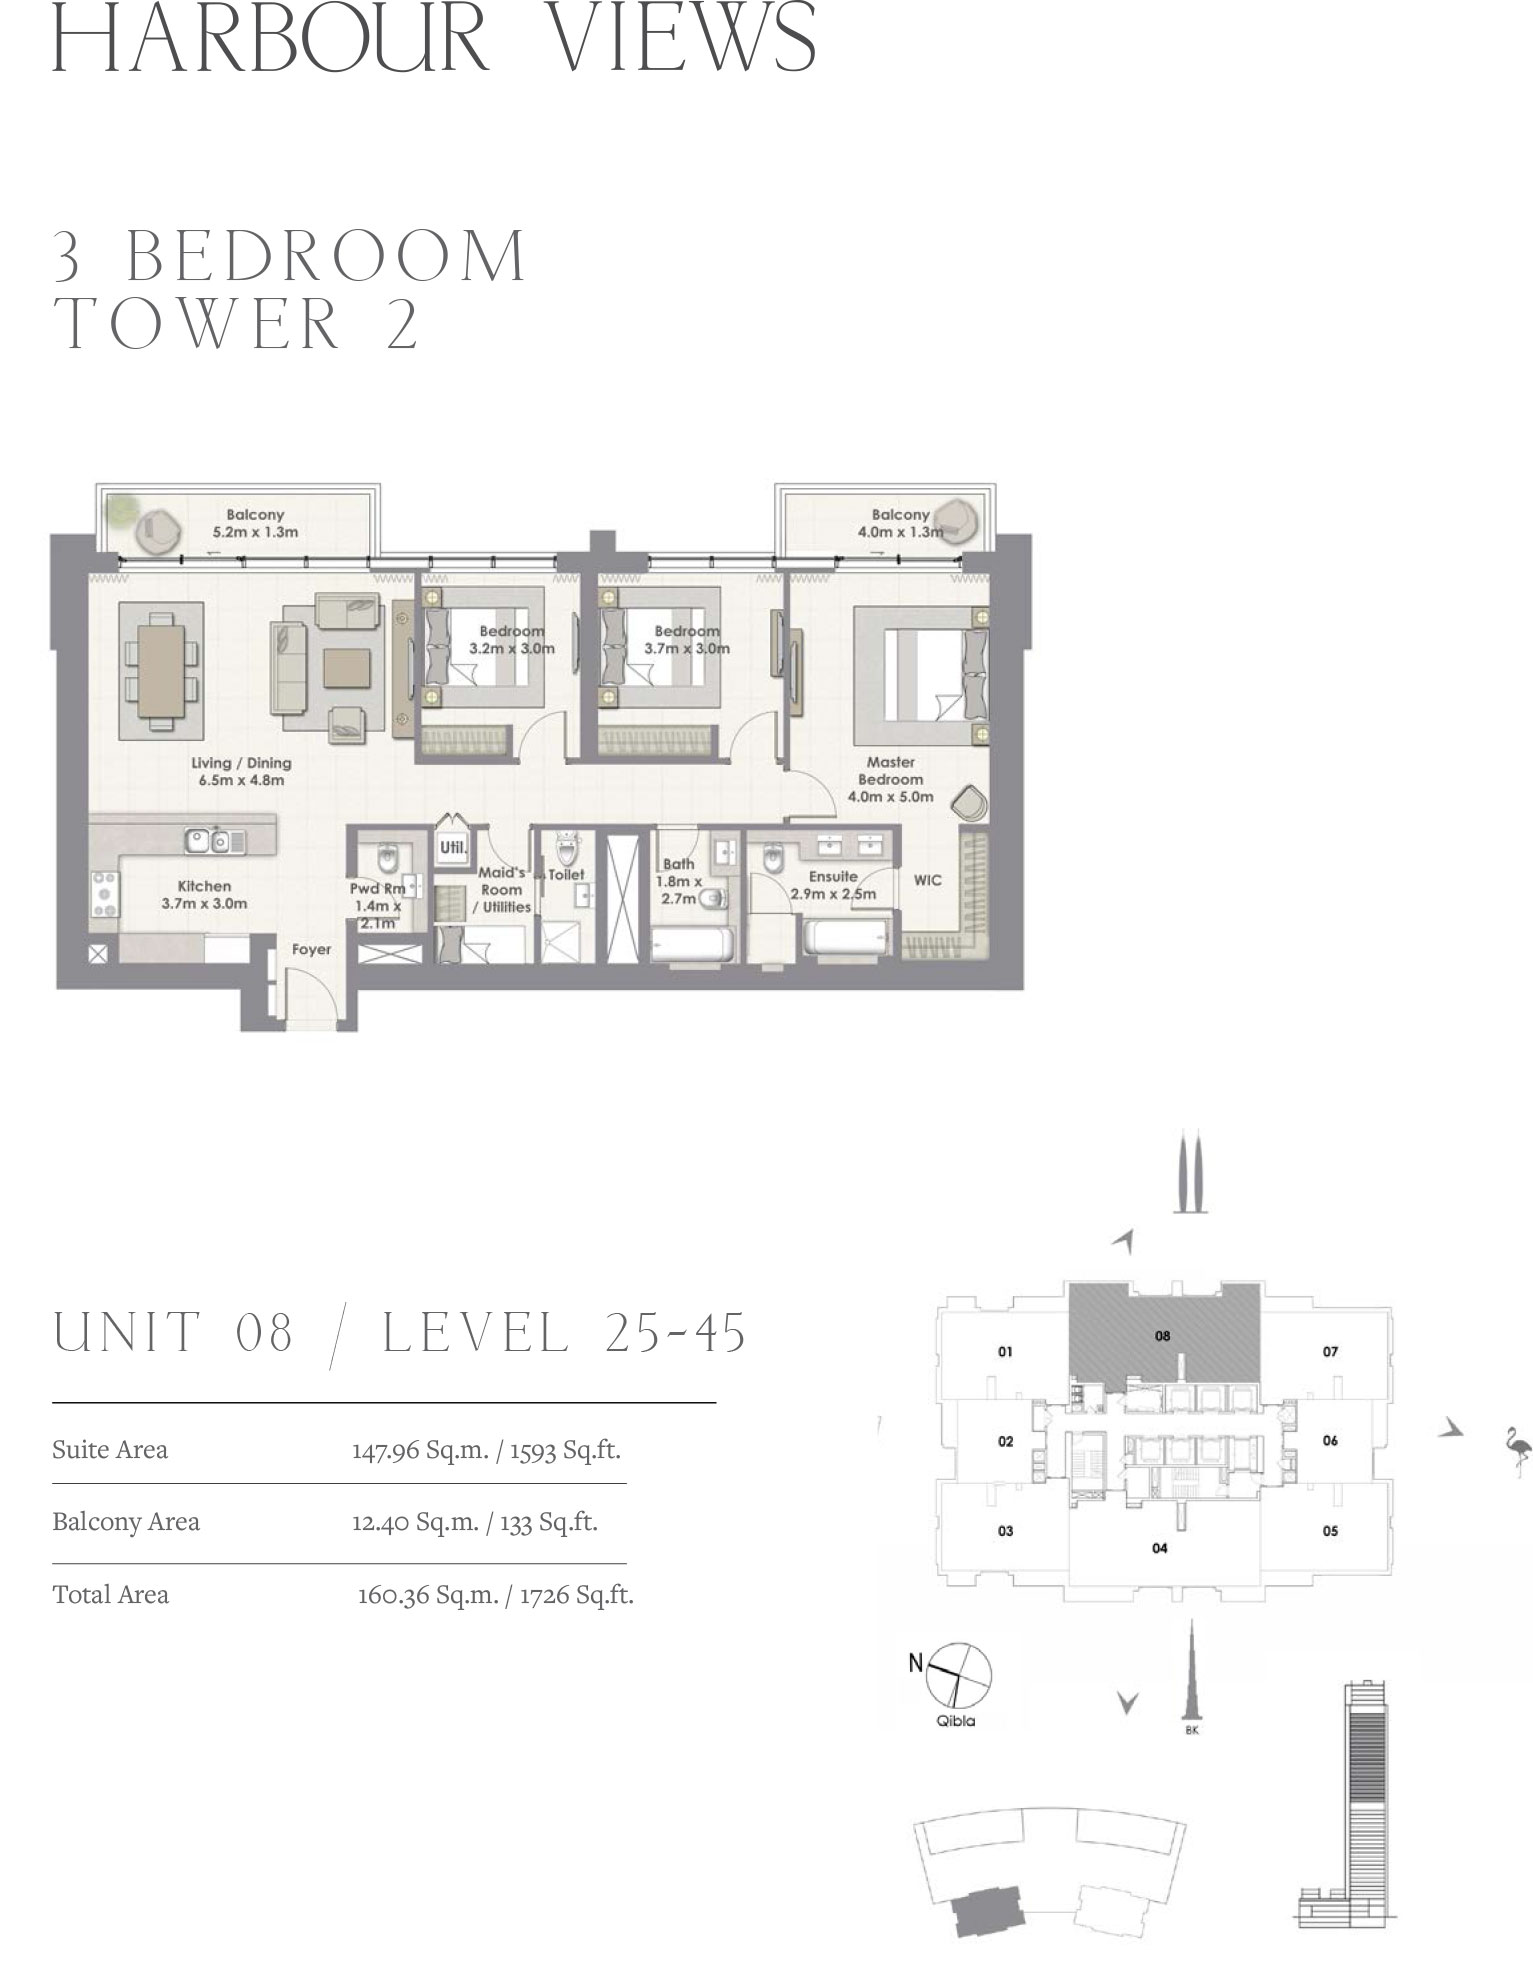 3 Bedroom Tower 2, Unit 08/Level 25-45